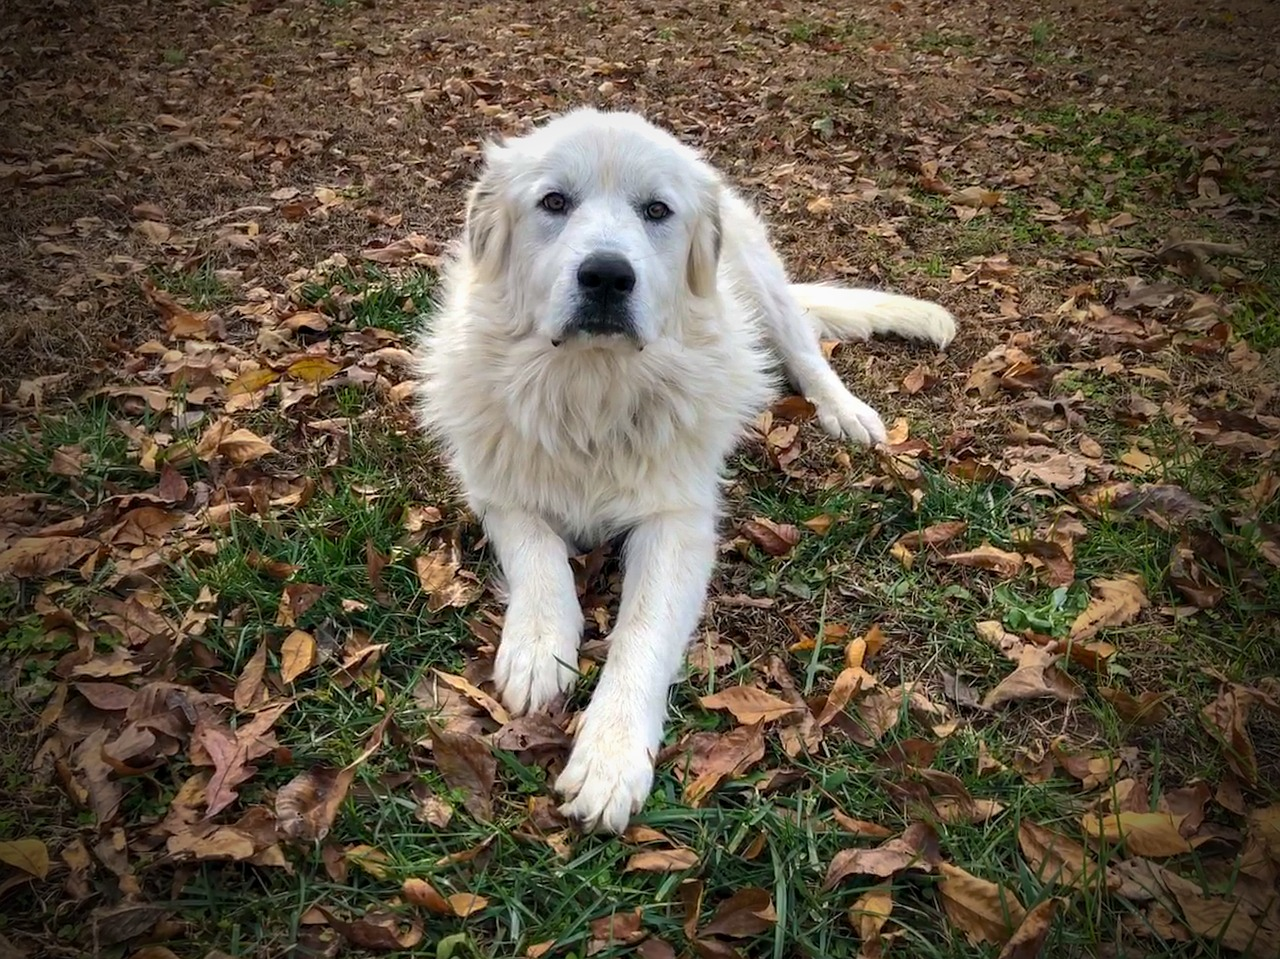 Great Pyrenees Dog Breed - Complete Profile, History, and Care. https://petspalo.com